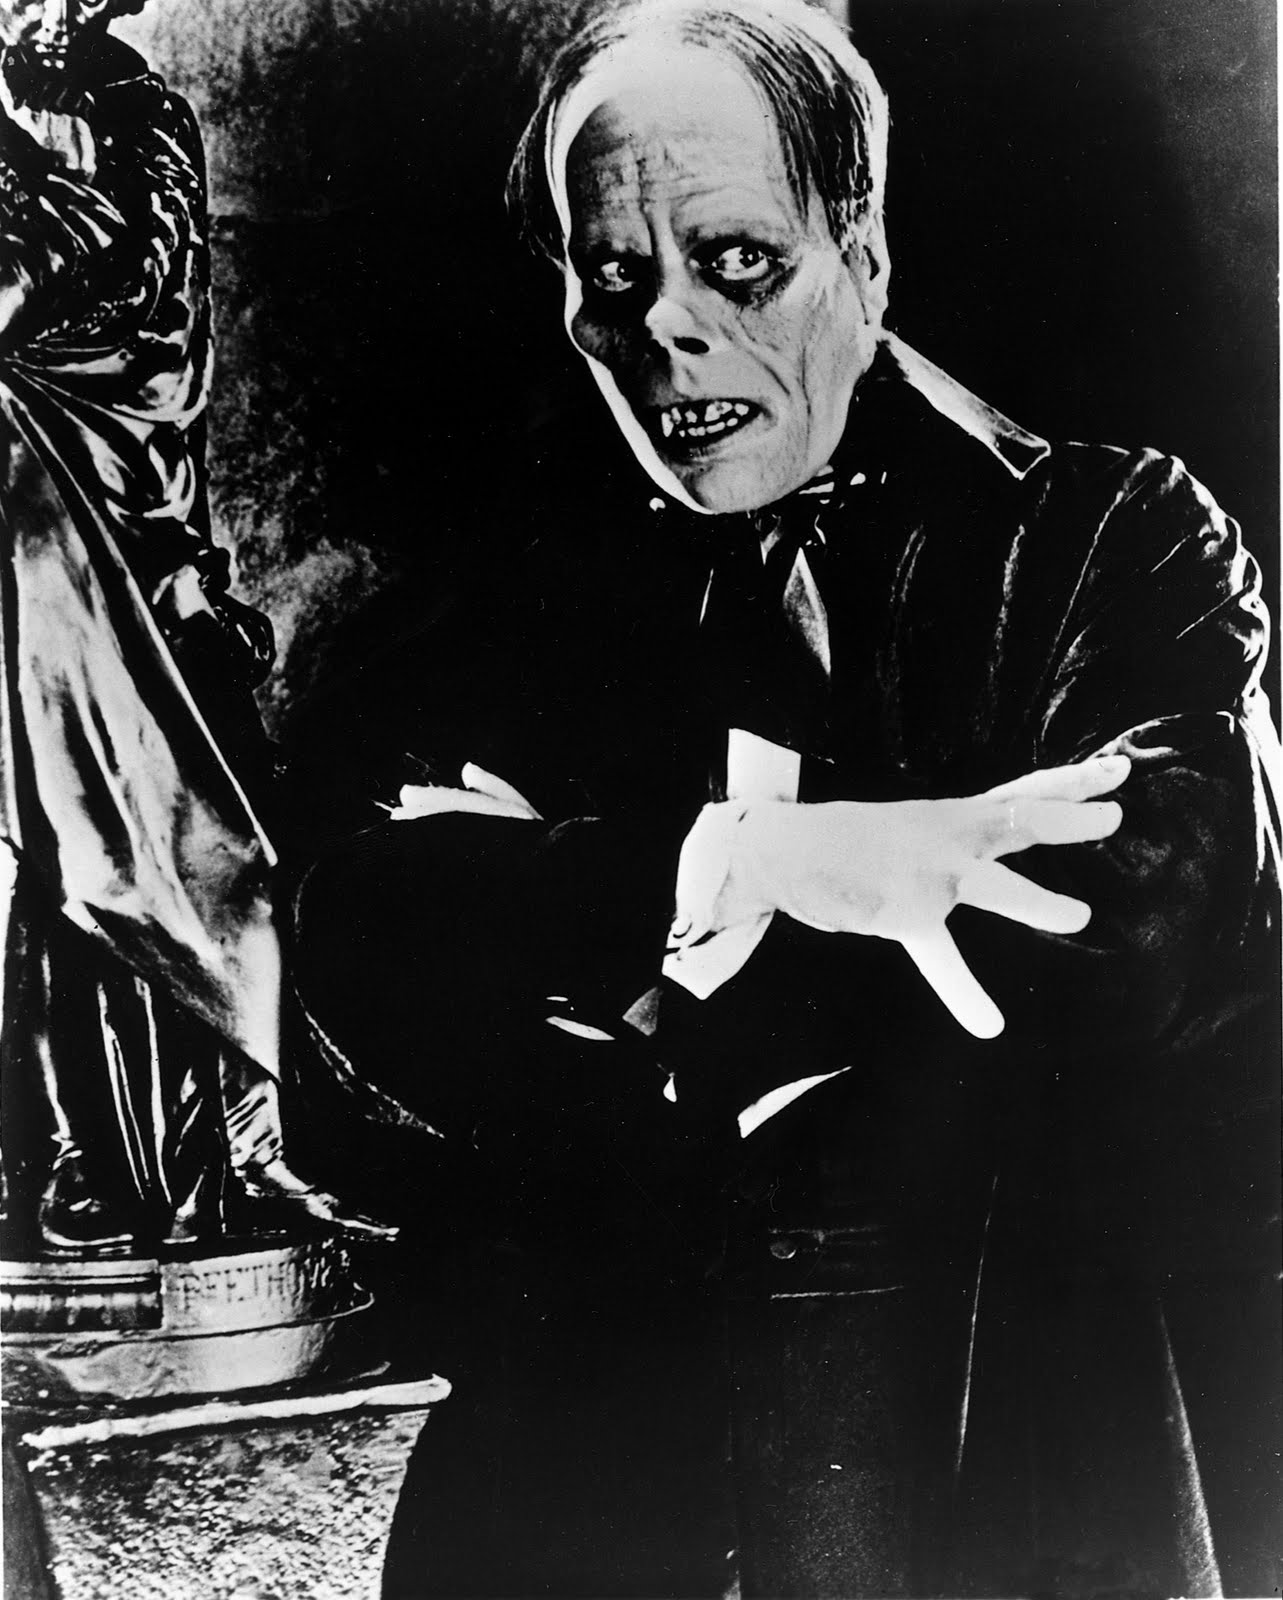 Horror: 1000+ Images About Classic Movie Monsters On Pinterest